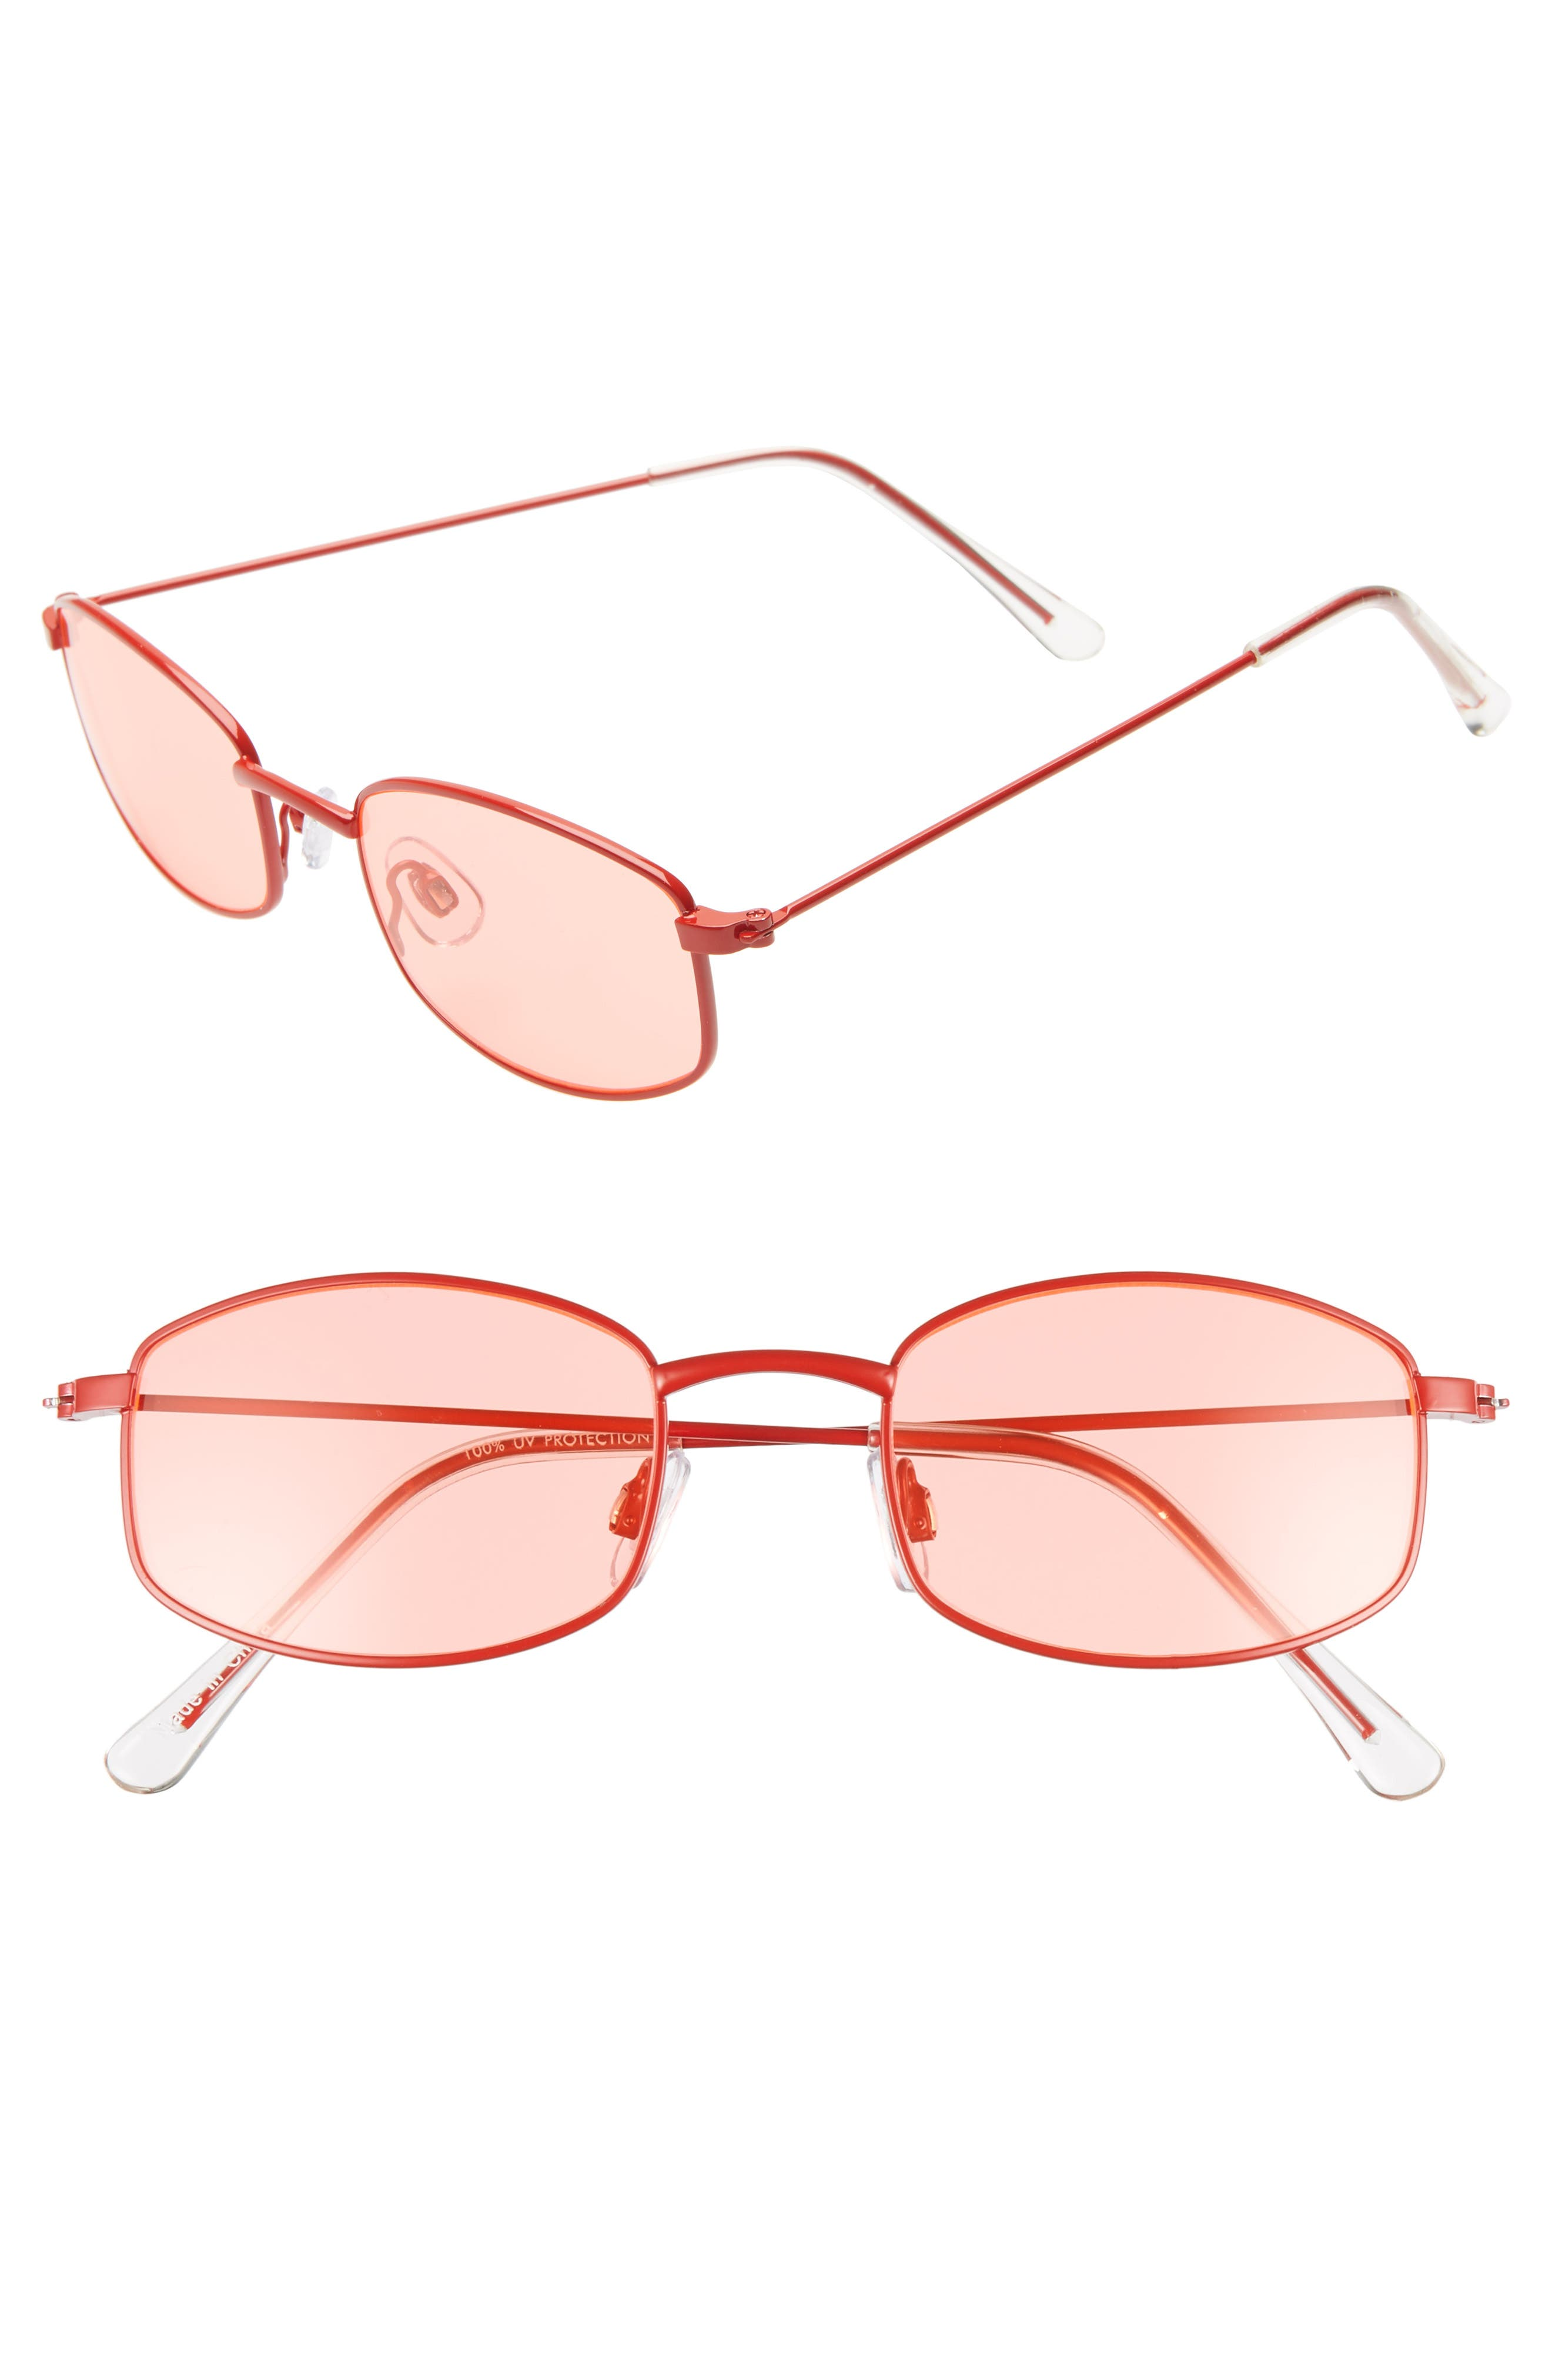 Mini 55mm Square Sunglasses,                         Main,                         color, RED